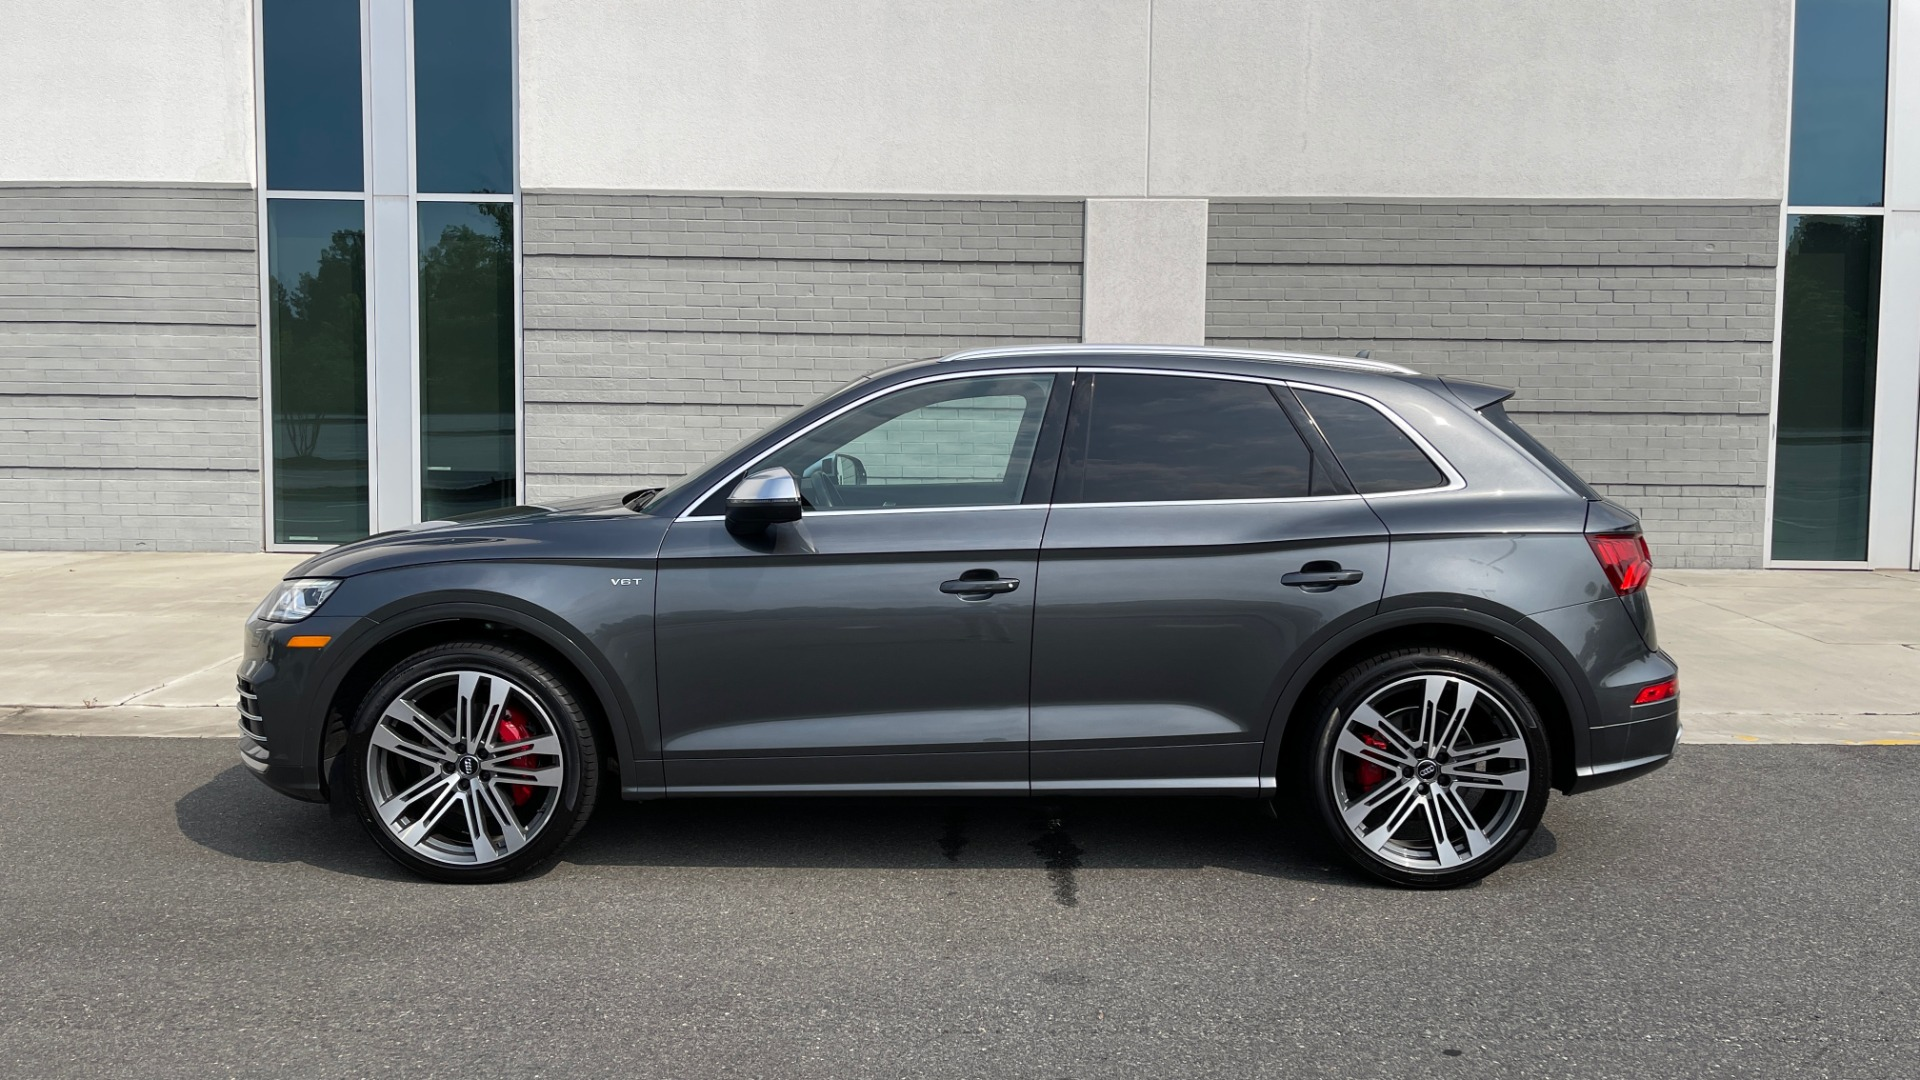 Used 2018 Audi SQ5 PREMIUM PLUS / S-SPORT / NAV / B&O SND / SUNROOF / REARVIEW for sale $43,995 at Formula Imports in Charlotte NC 28227 4